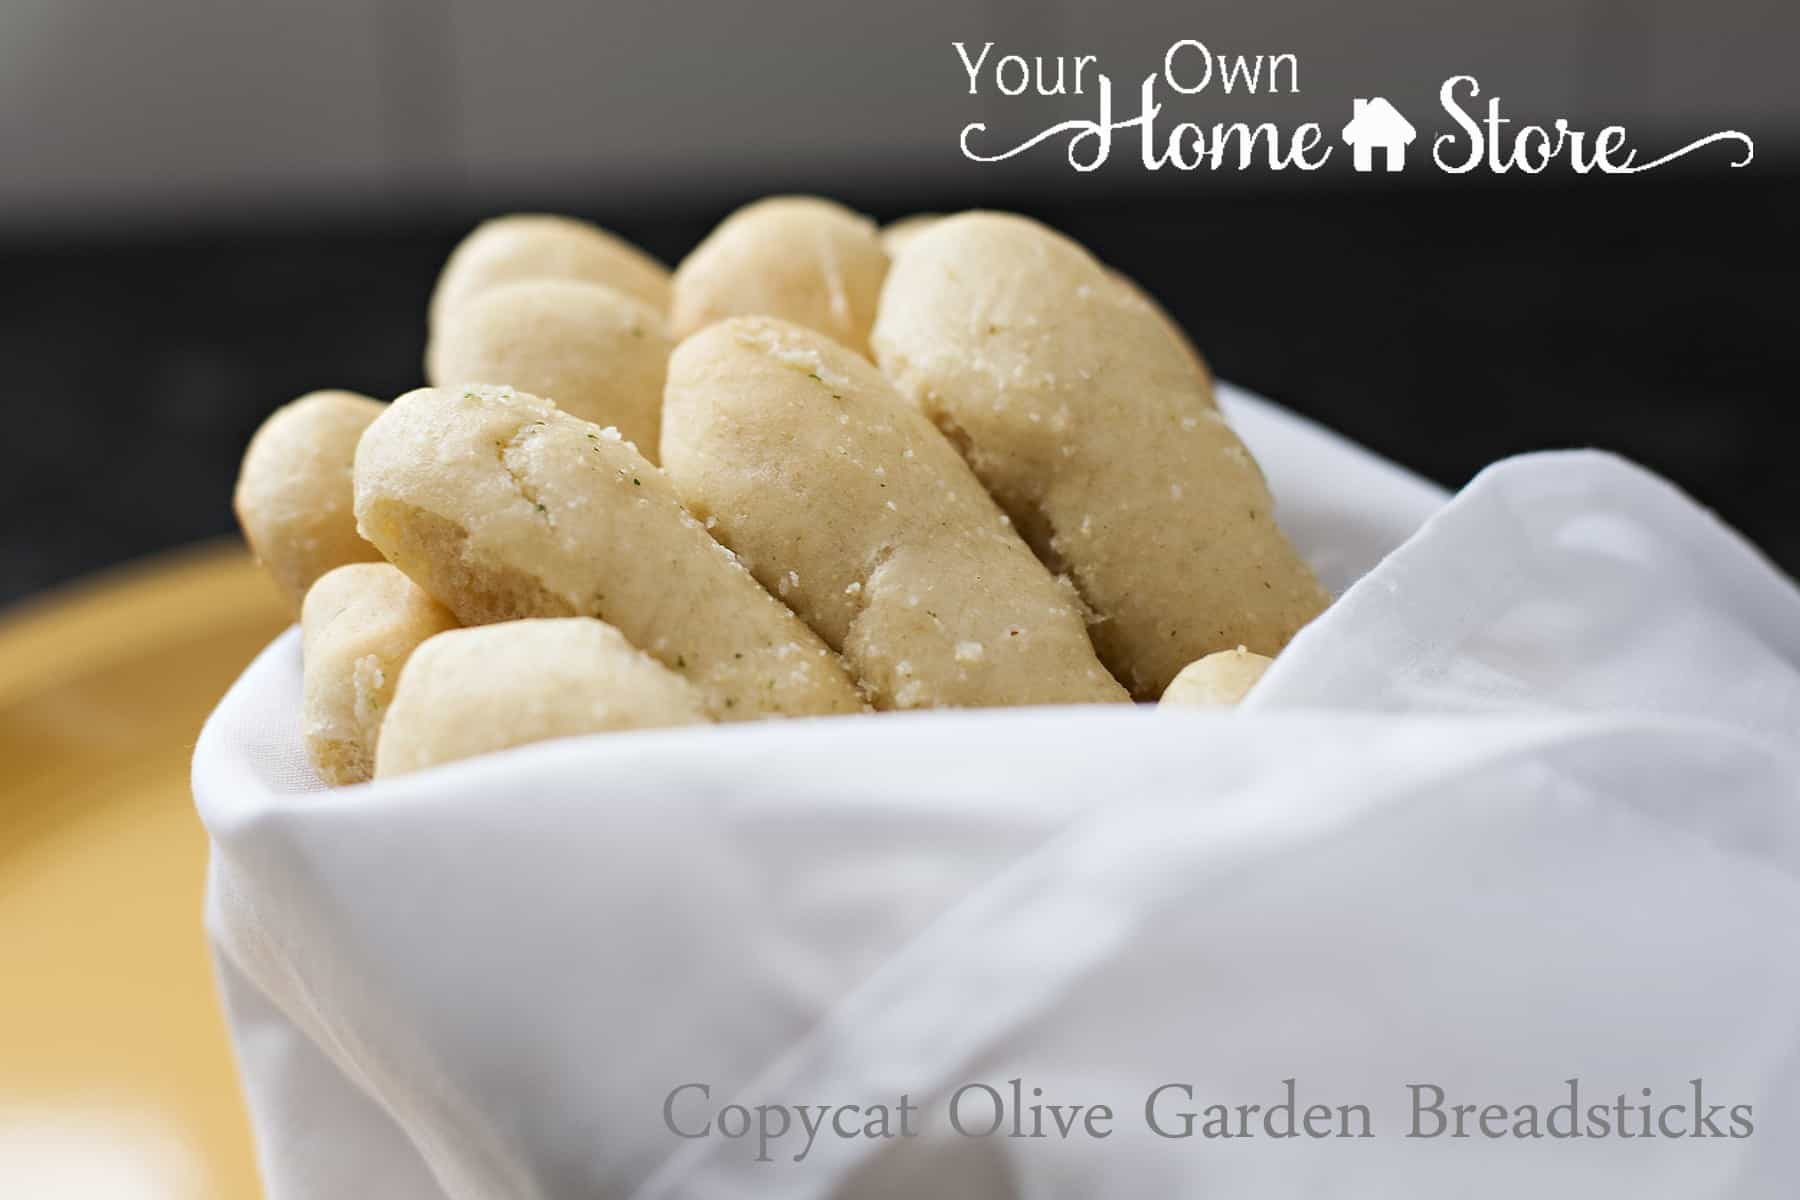 Copycat Recipe: Olive Garden Breadsticks